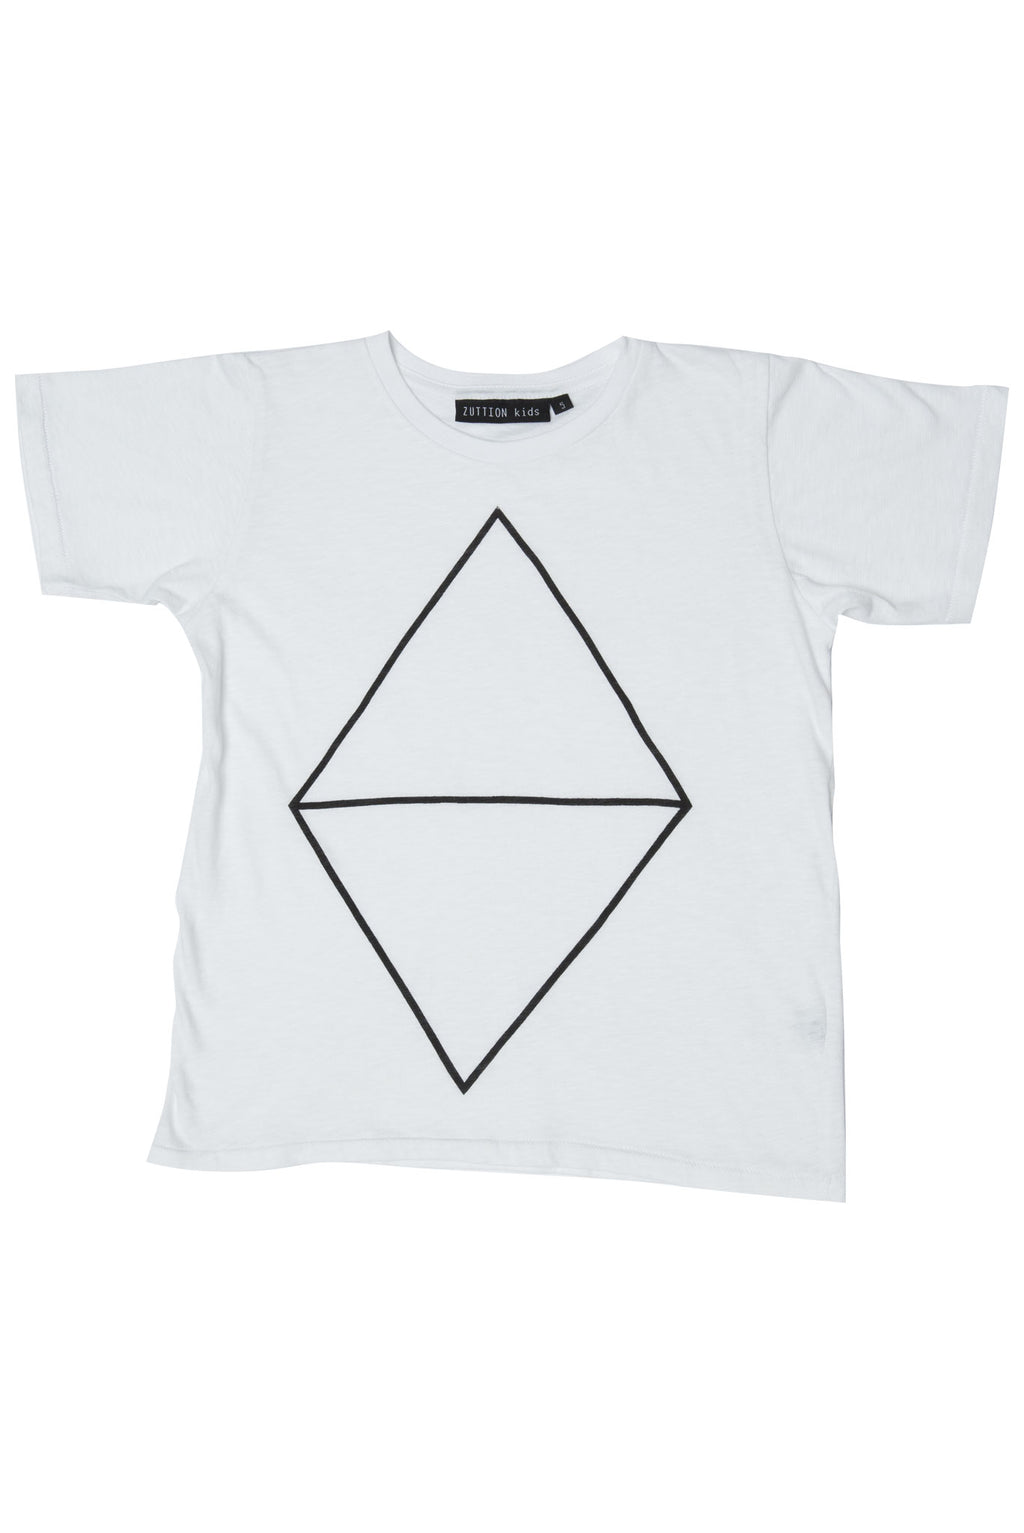 DIAMOND ROUND NECK T WHITE - Zuttion